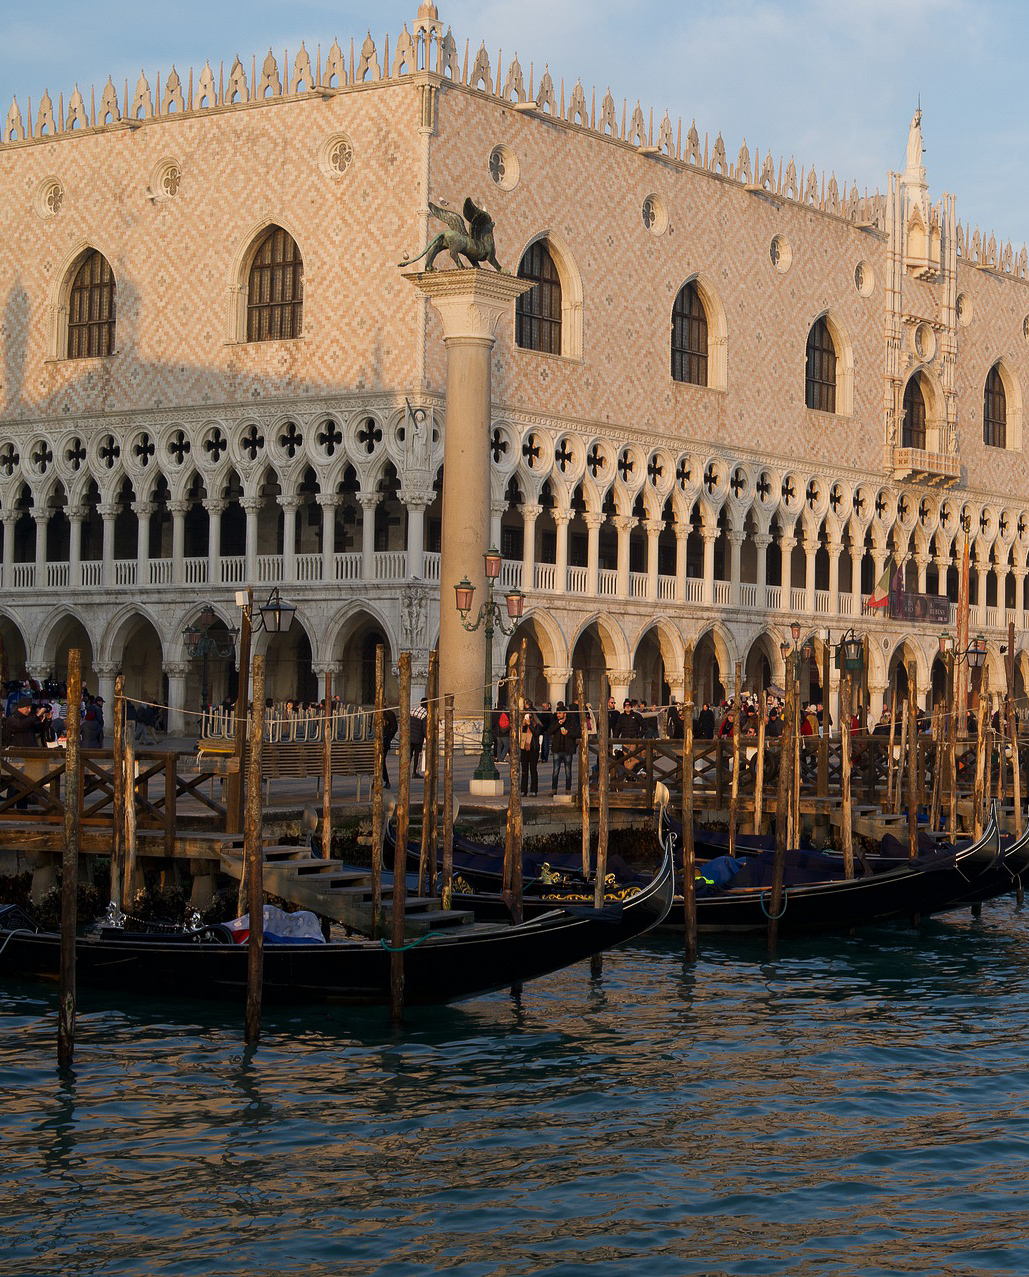 The Doge's Palace in St. Mark's Square, which used to be the seat of the government during the Venetian Republic